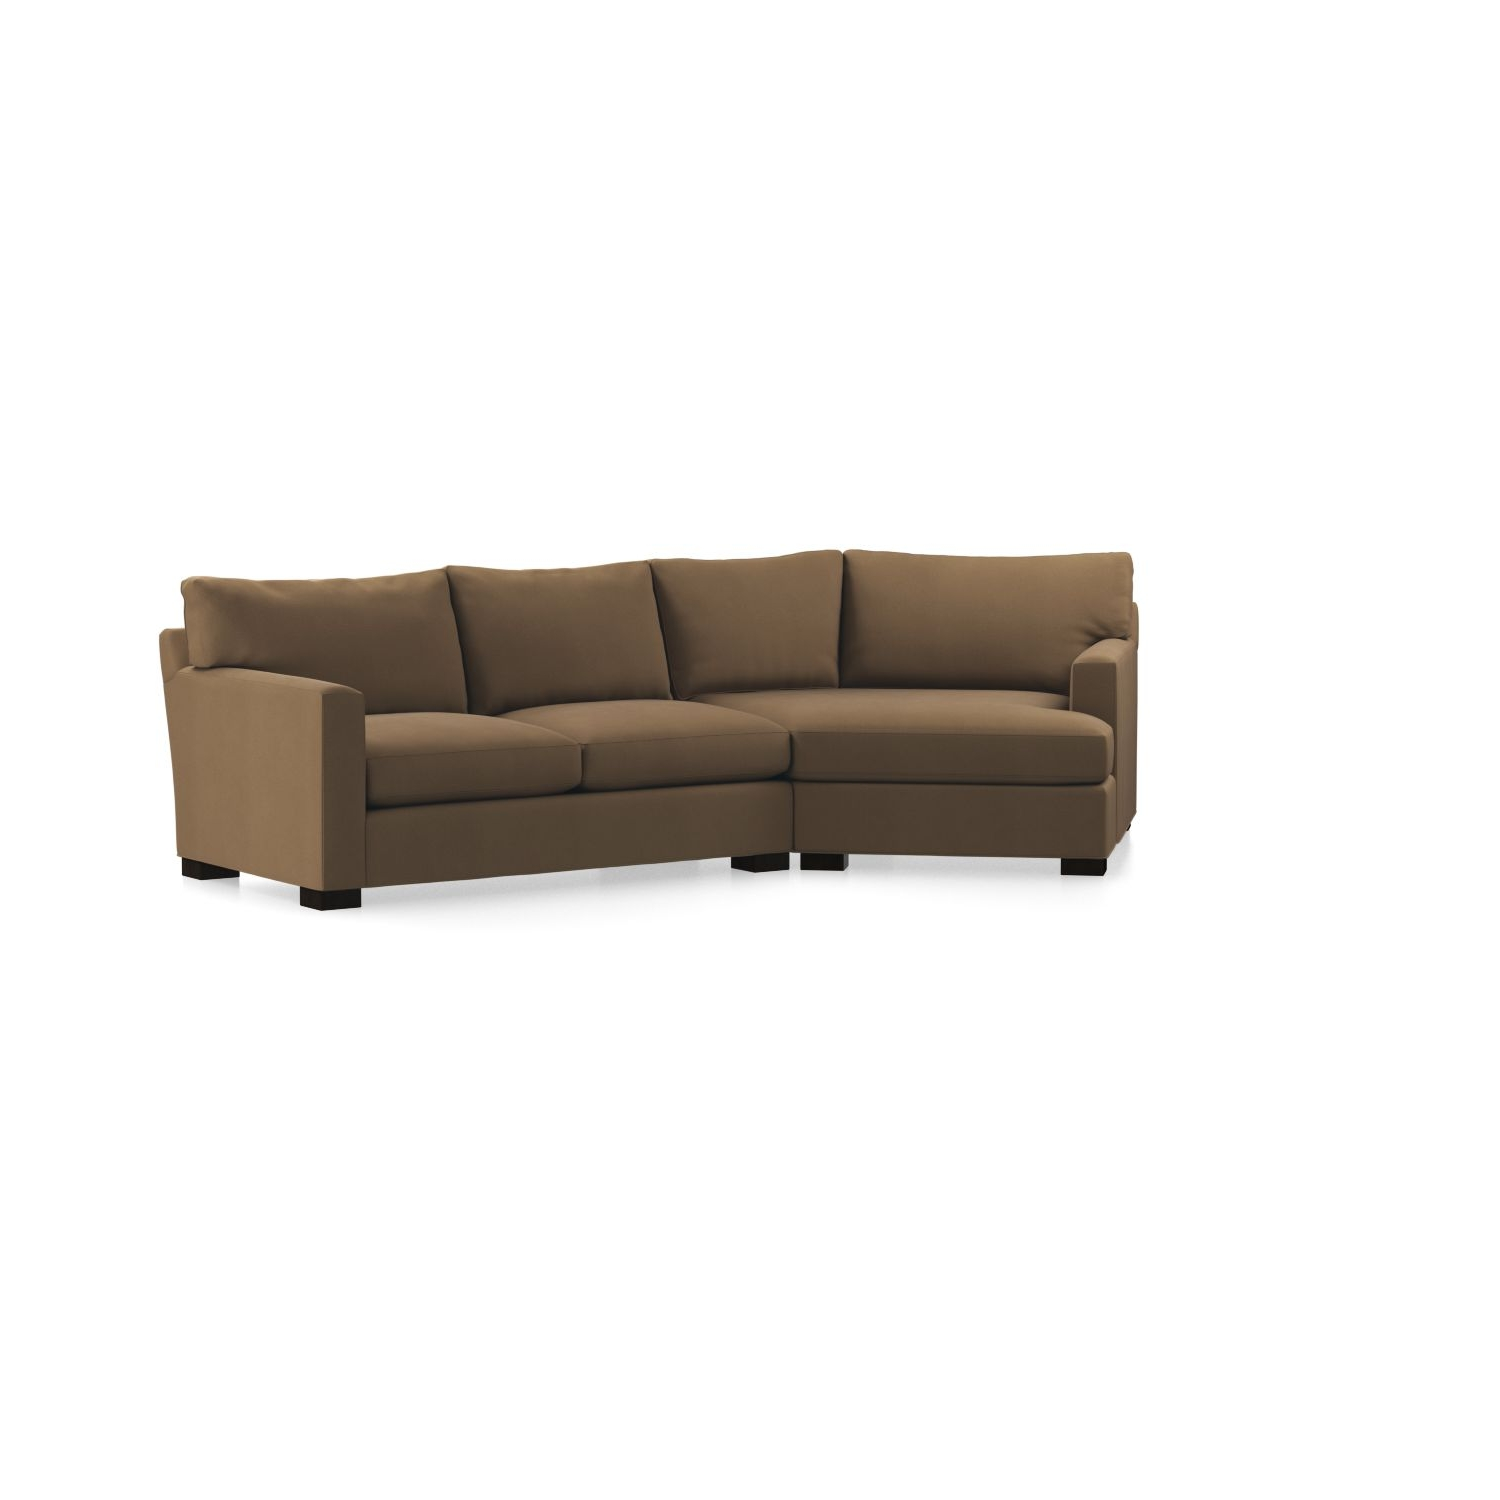 Newest Axis Ii 2 Piece Left Arm Angled Chaise Sectional Sofa In Axis Within Angled Chaise Sofas (View 11 of 15)